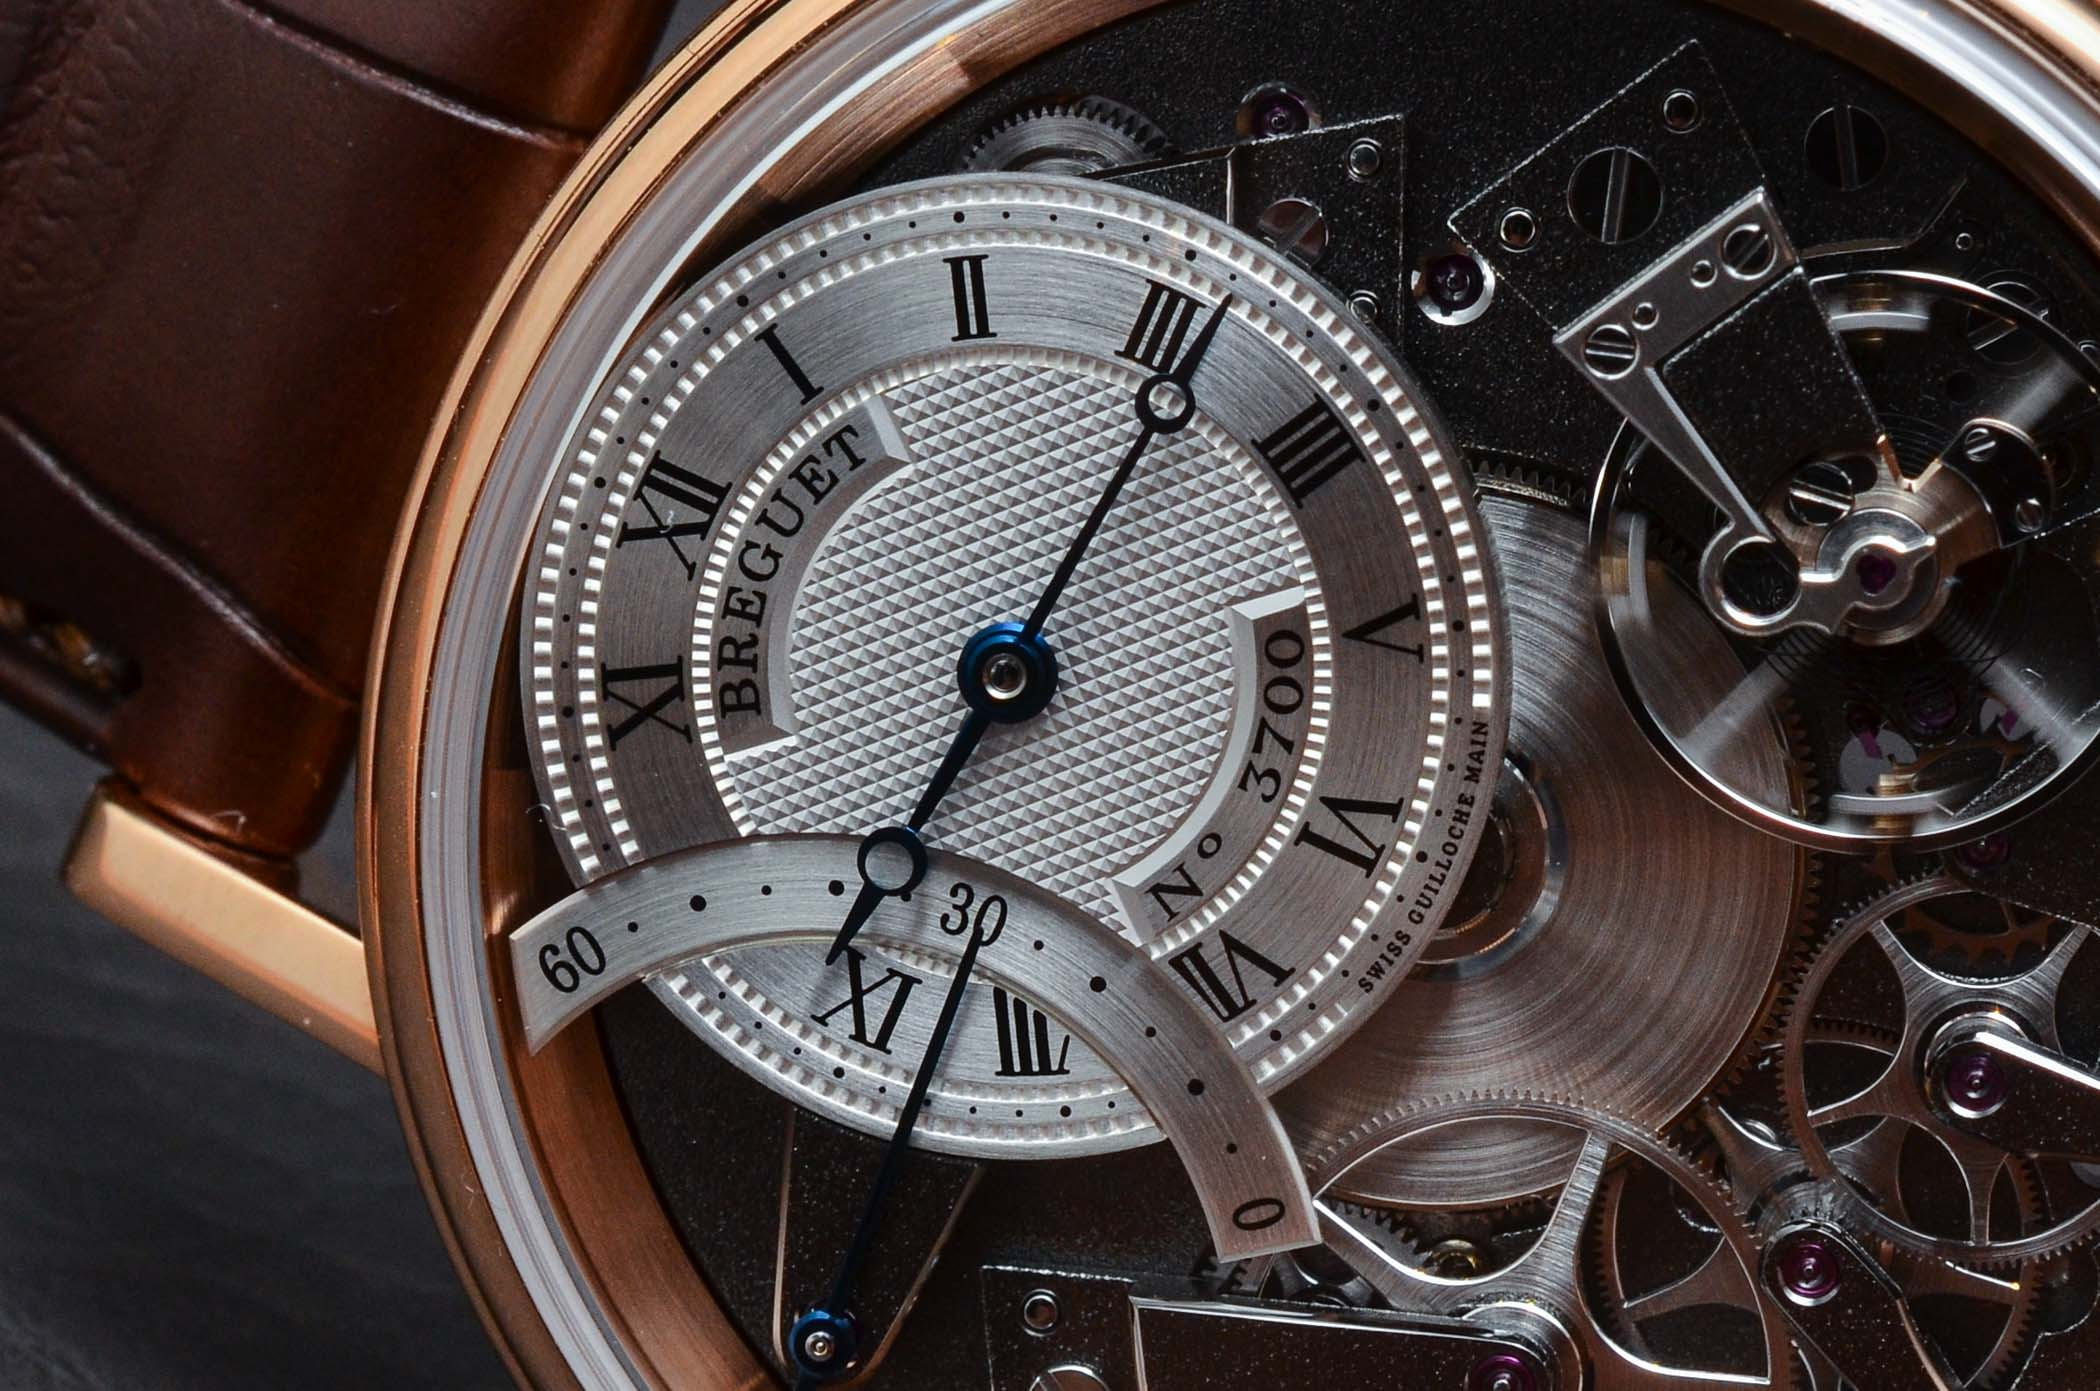 Breguet Guillochage Engine Turning technique in-depth - 2